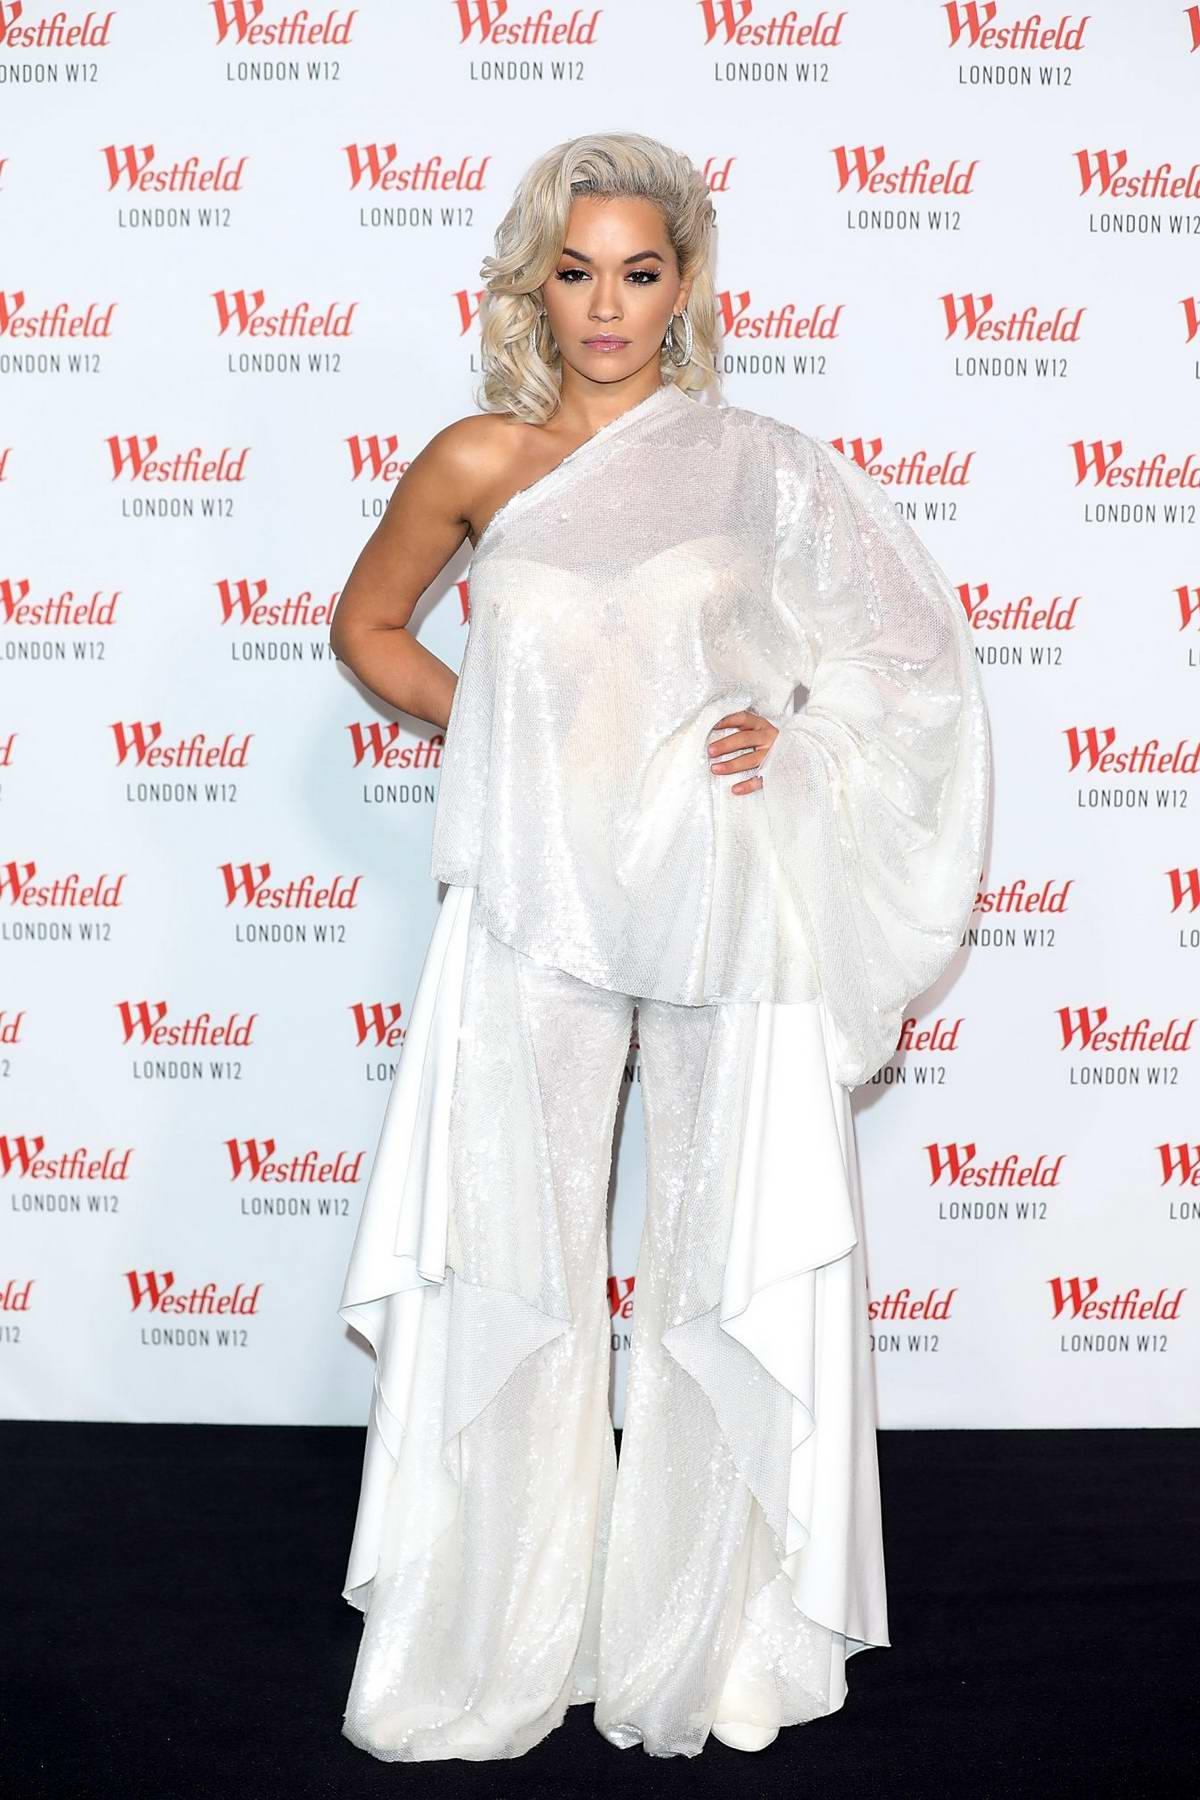 Rita Ora attends Westfield London's 10th Anniversary Celebrations in London, UK